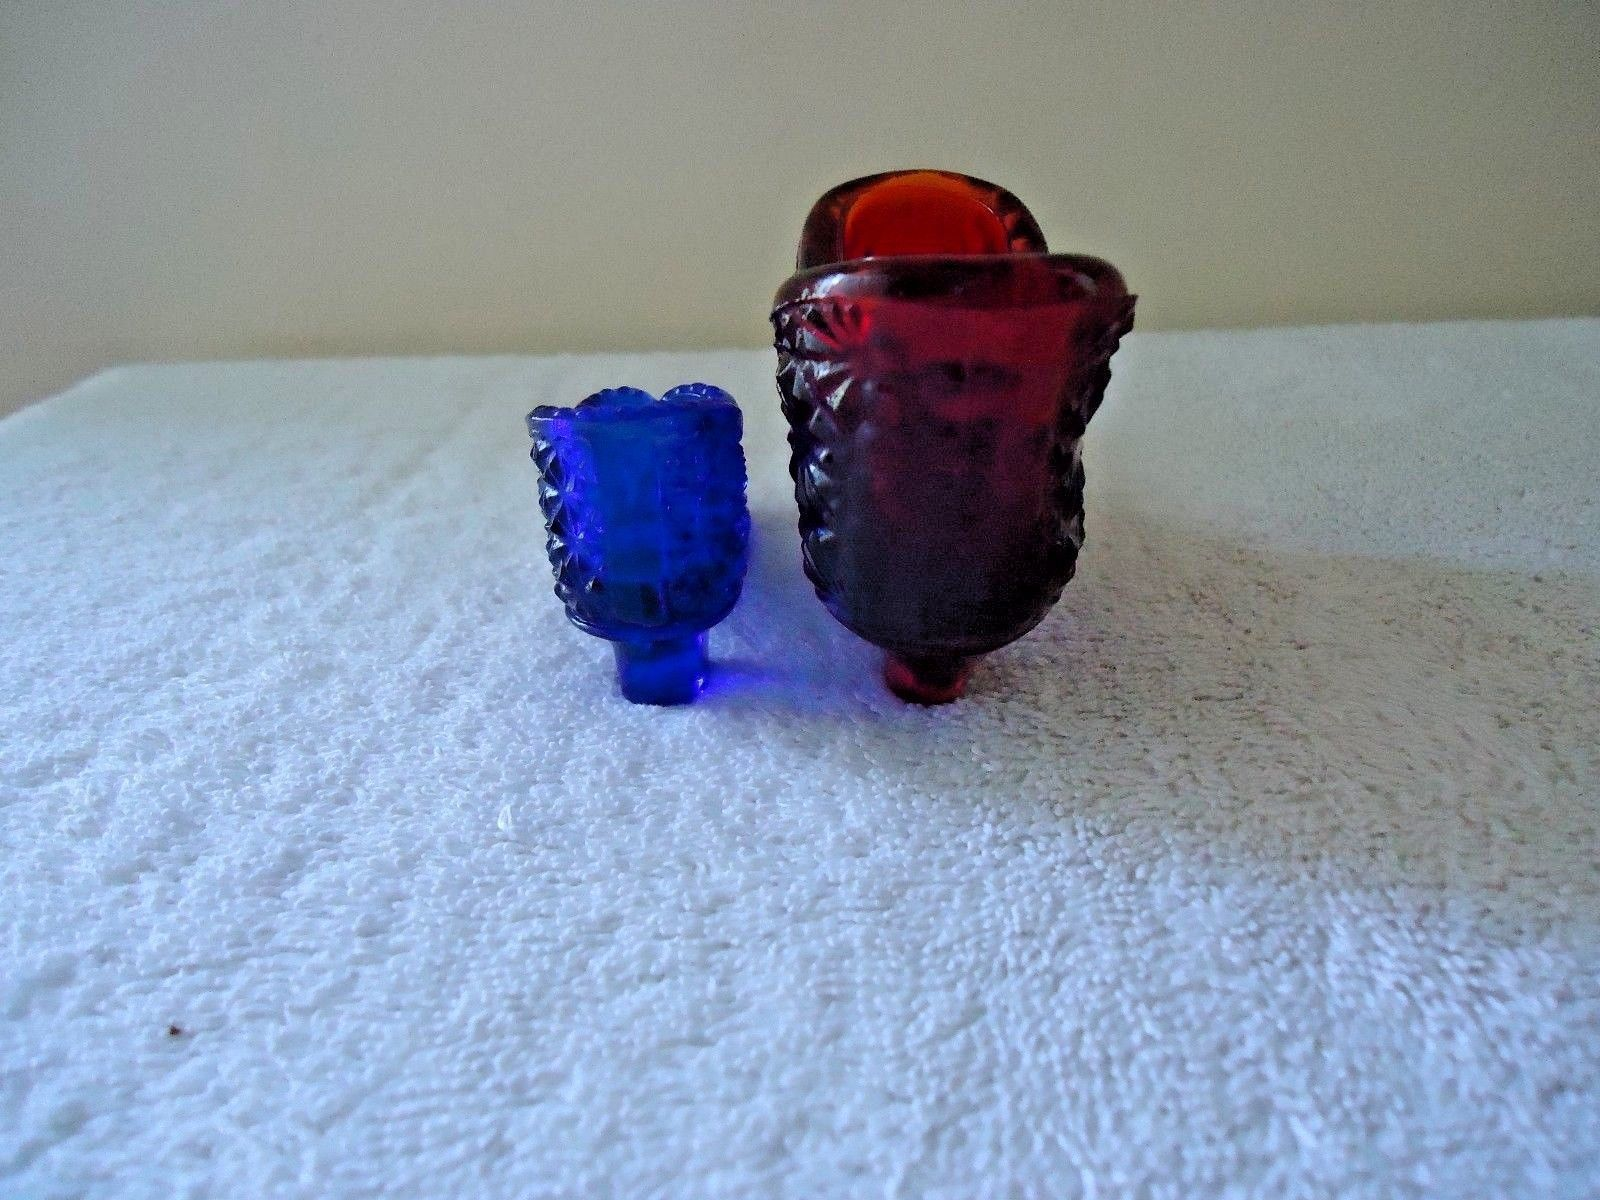 Vintage Lot Of 2 Glass Shoes Figurines,1 Red Color Fenton ?,1,Blue One